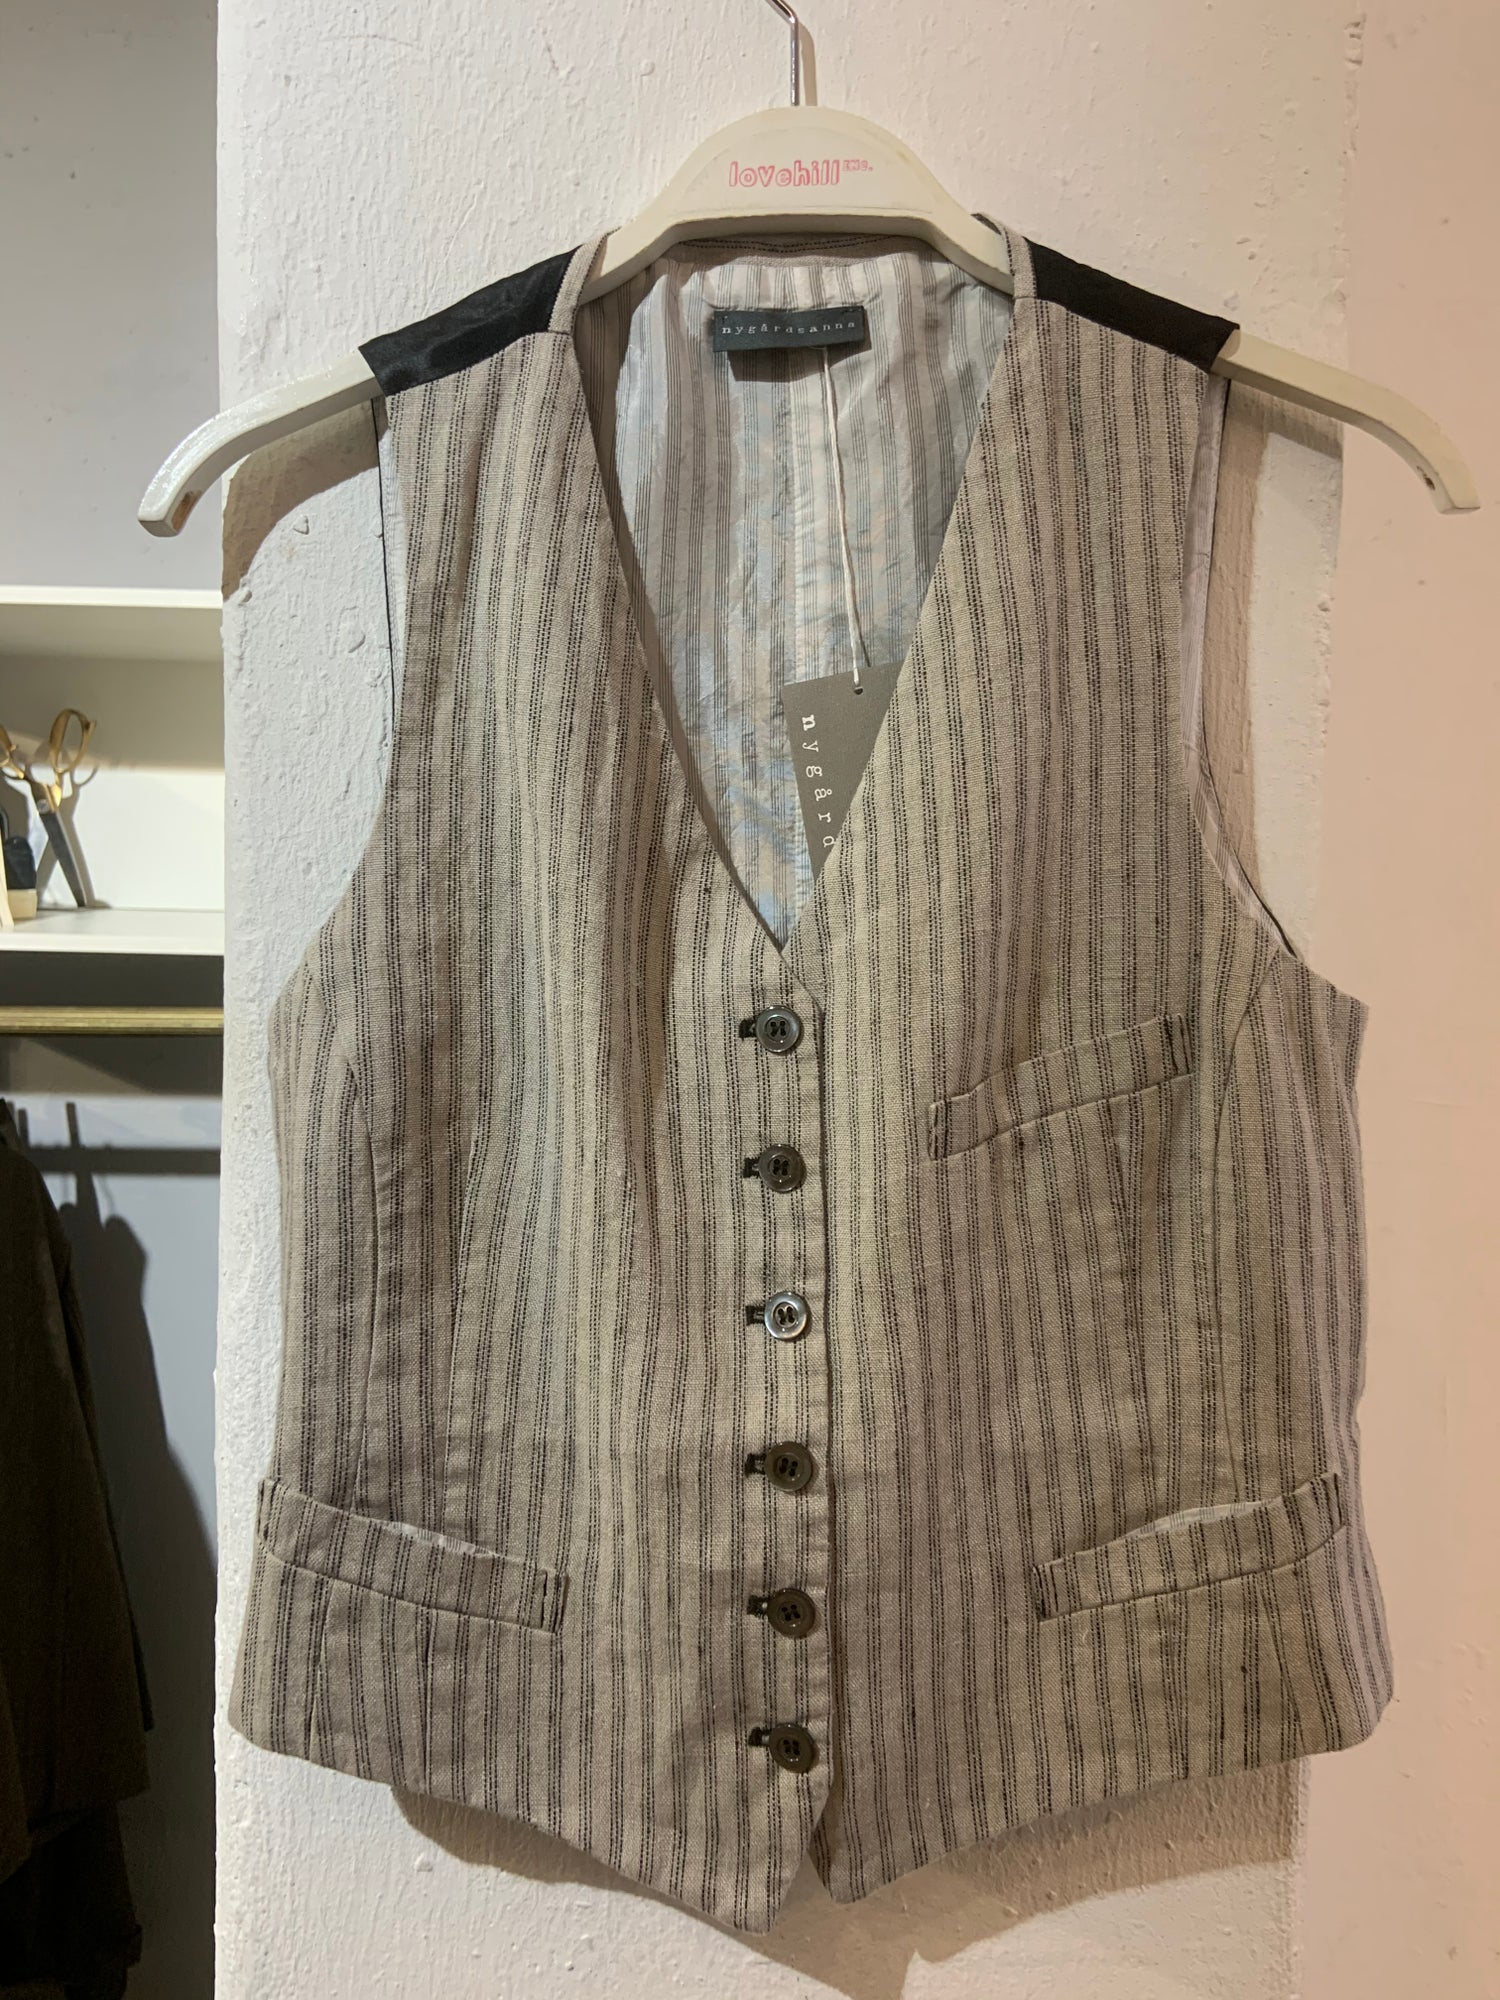 Image of NygardsAnna Waistcoat beige stripes